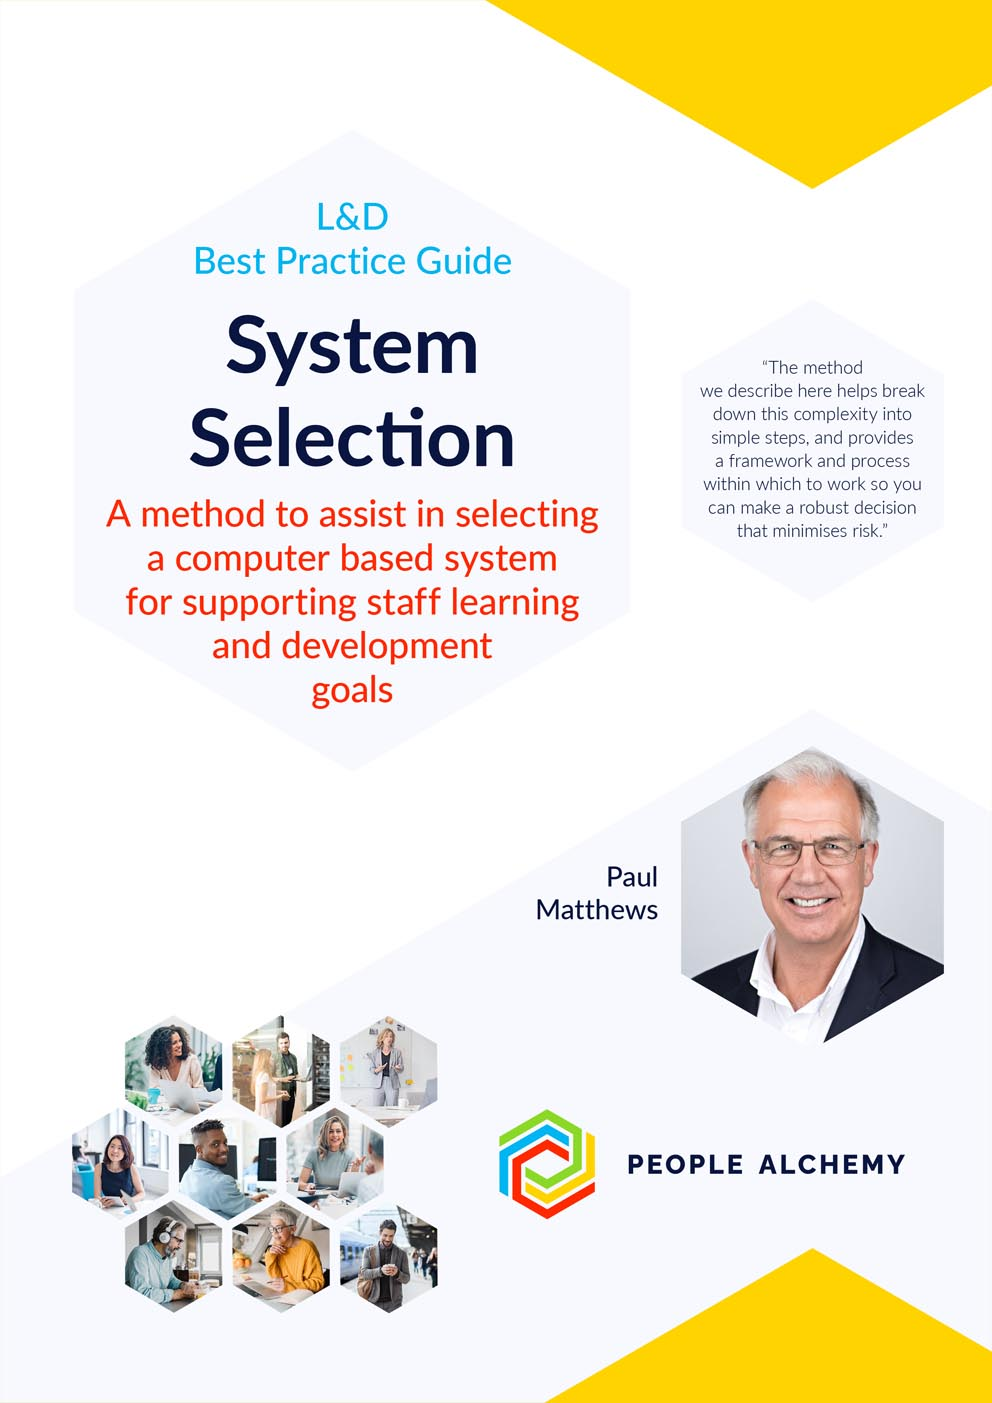 https://peoplealchemy.com/wp-content/uploads/2021/09/PA-Best-Practice-Guides-2021-covers-3.jpg